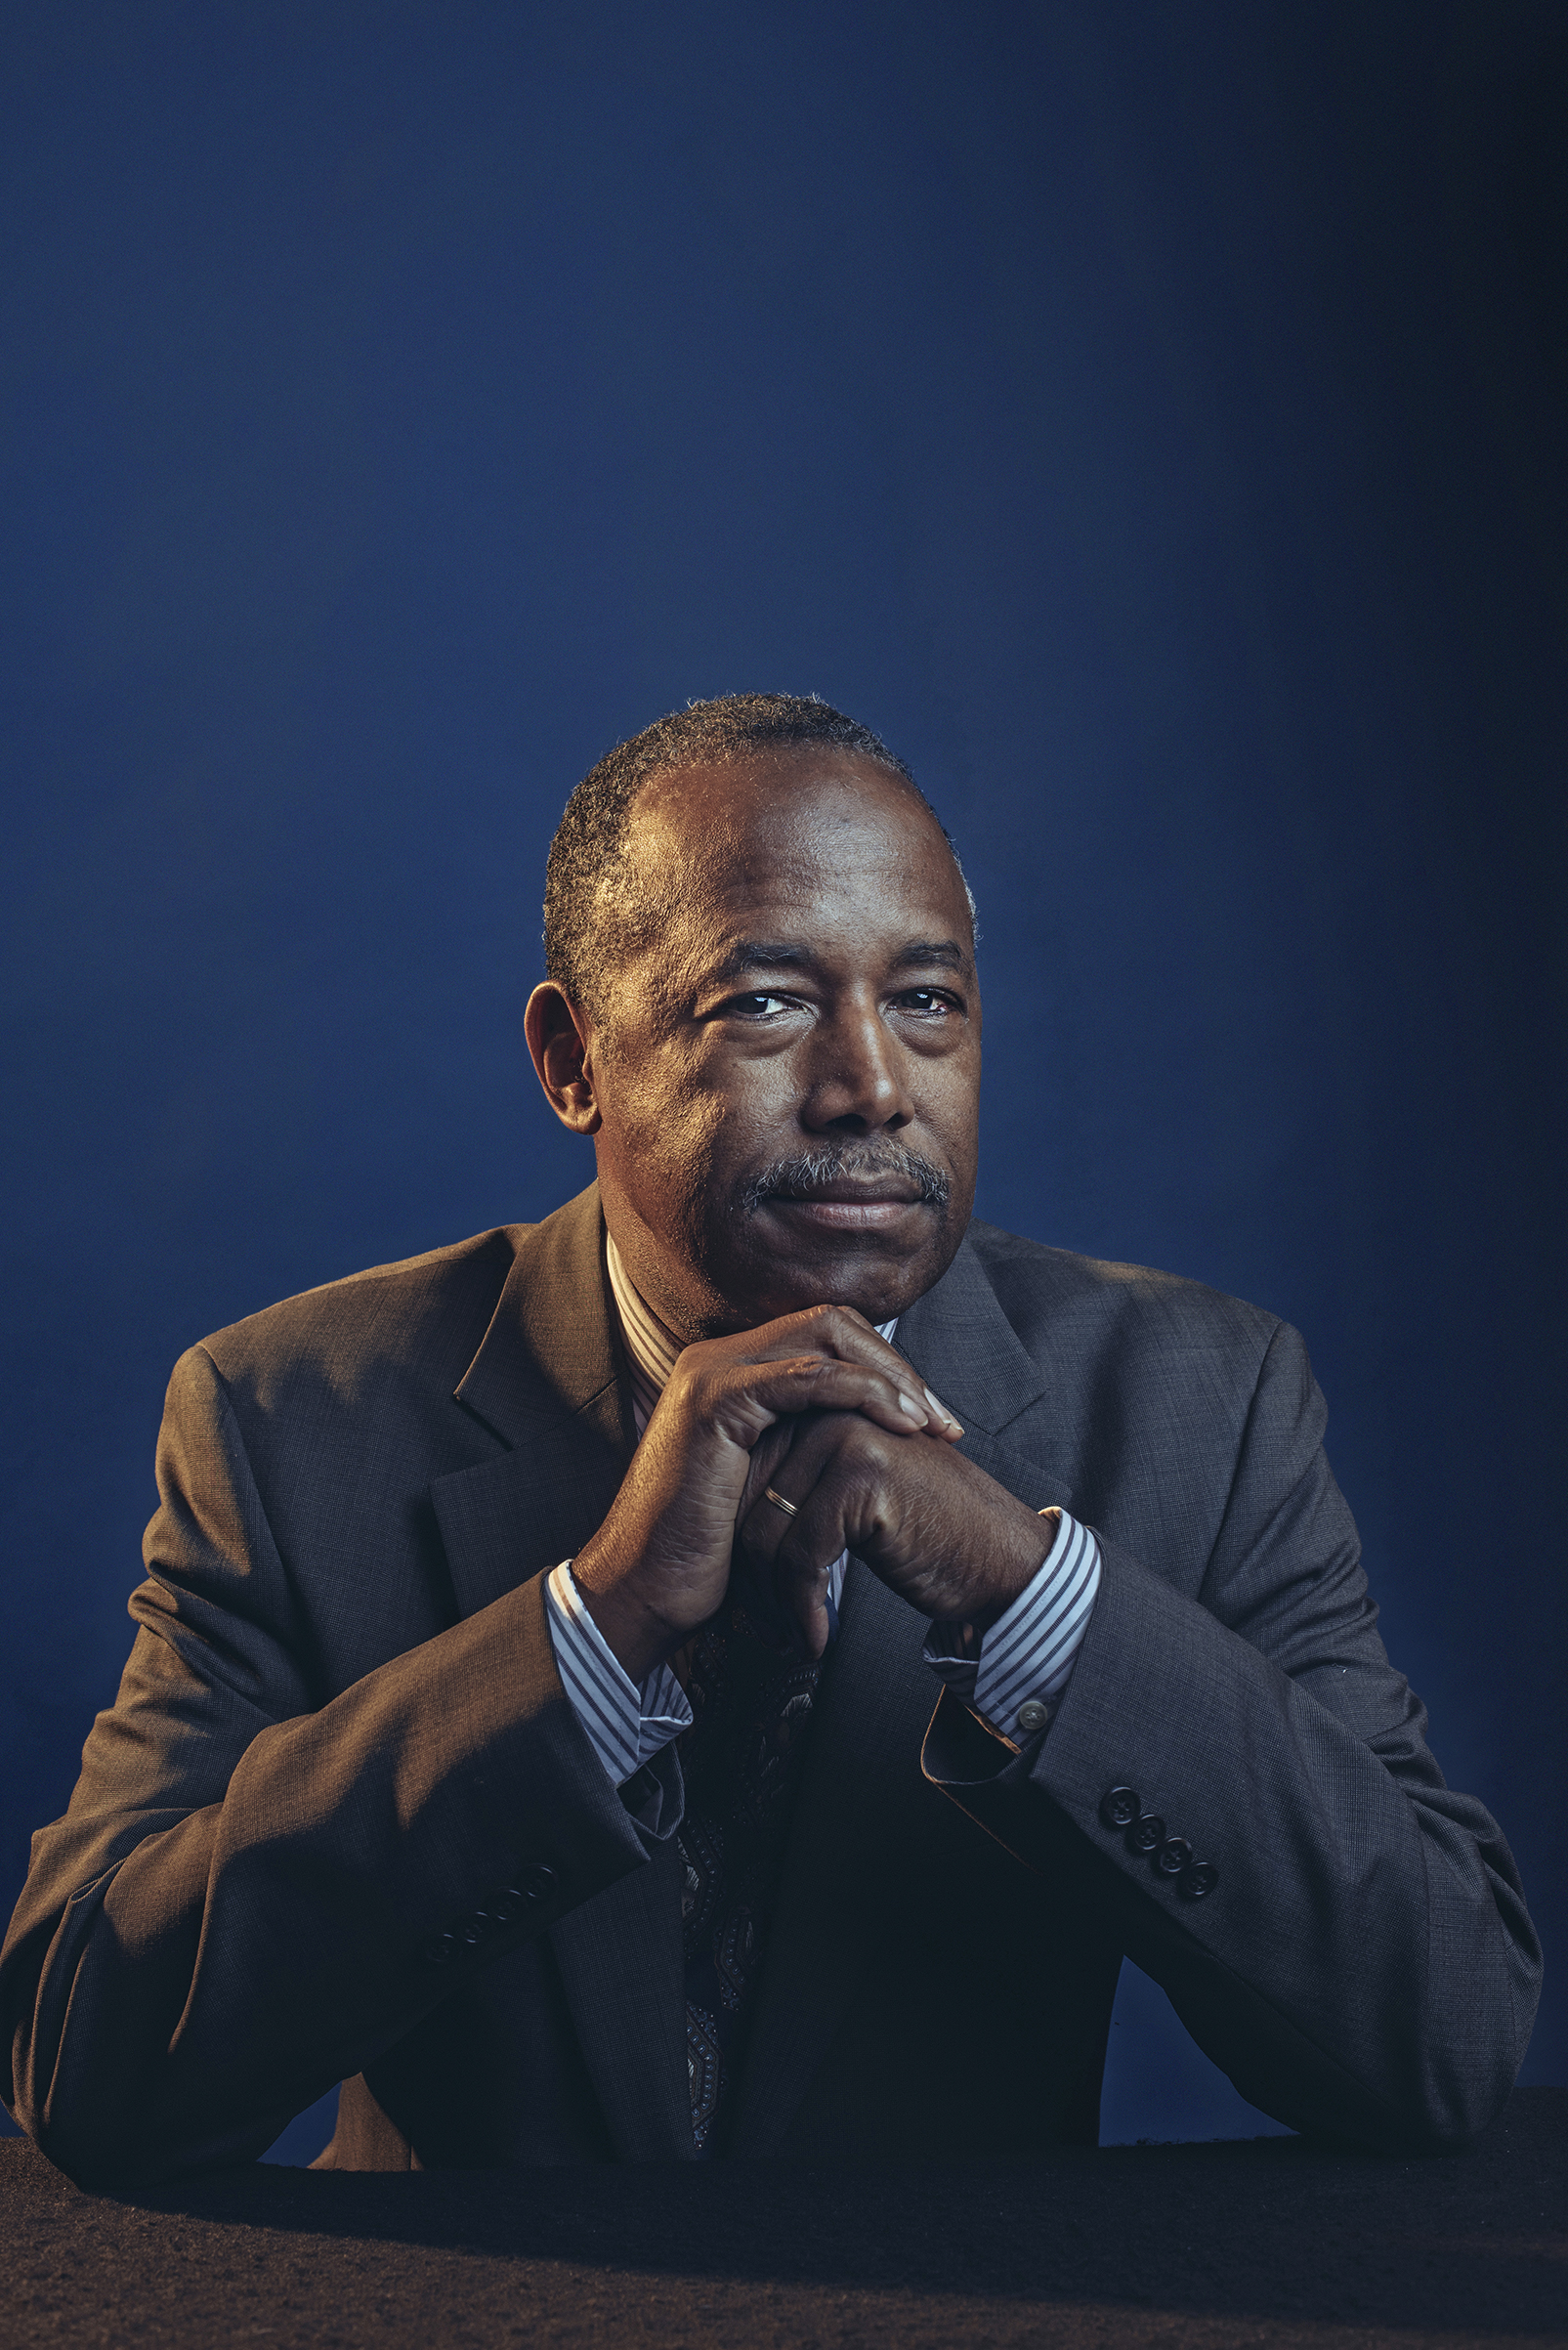 At HUD, Carson aims to craft programs that help the agency's beneficiaries without encouraging dependency on the government